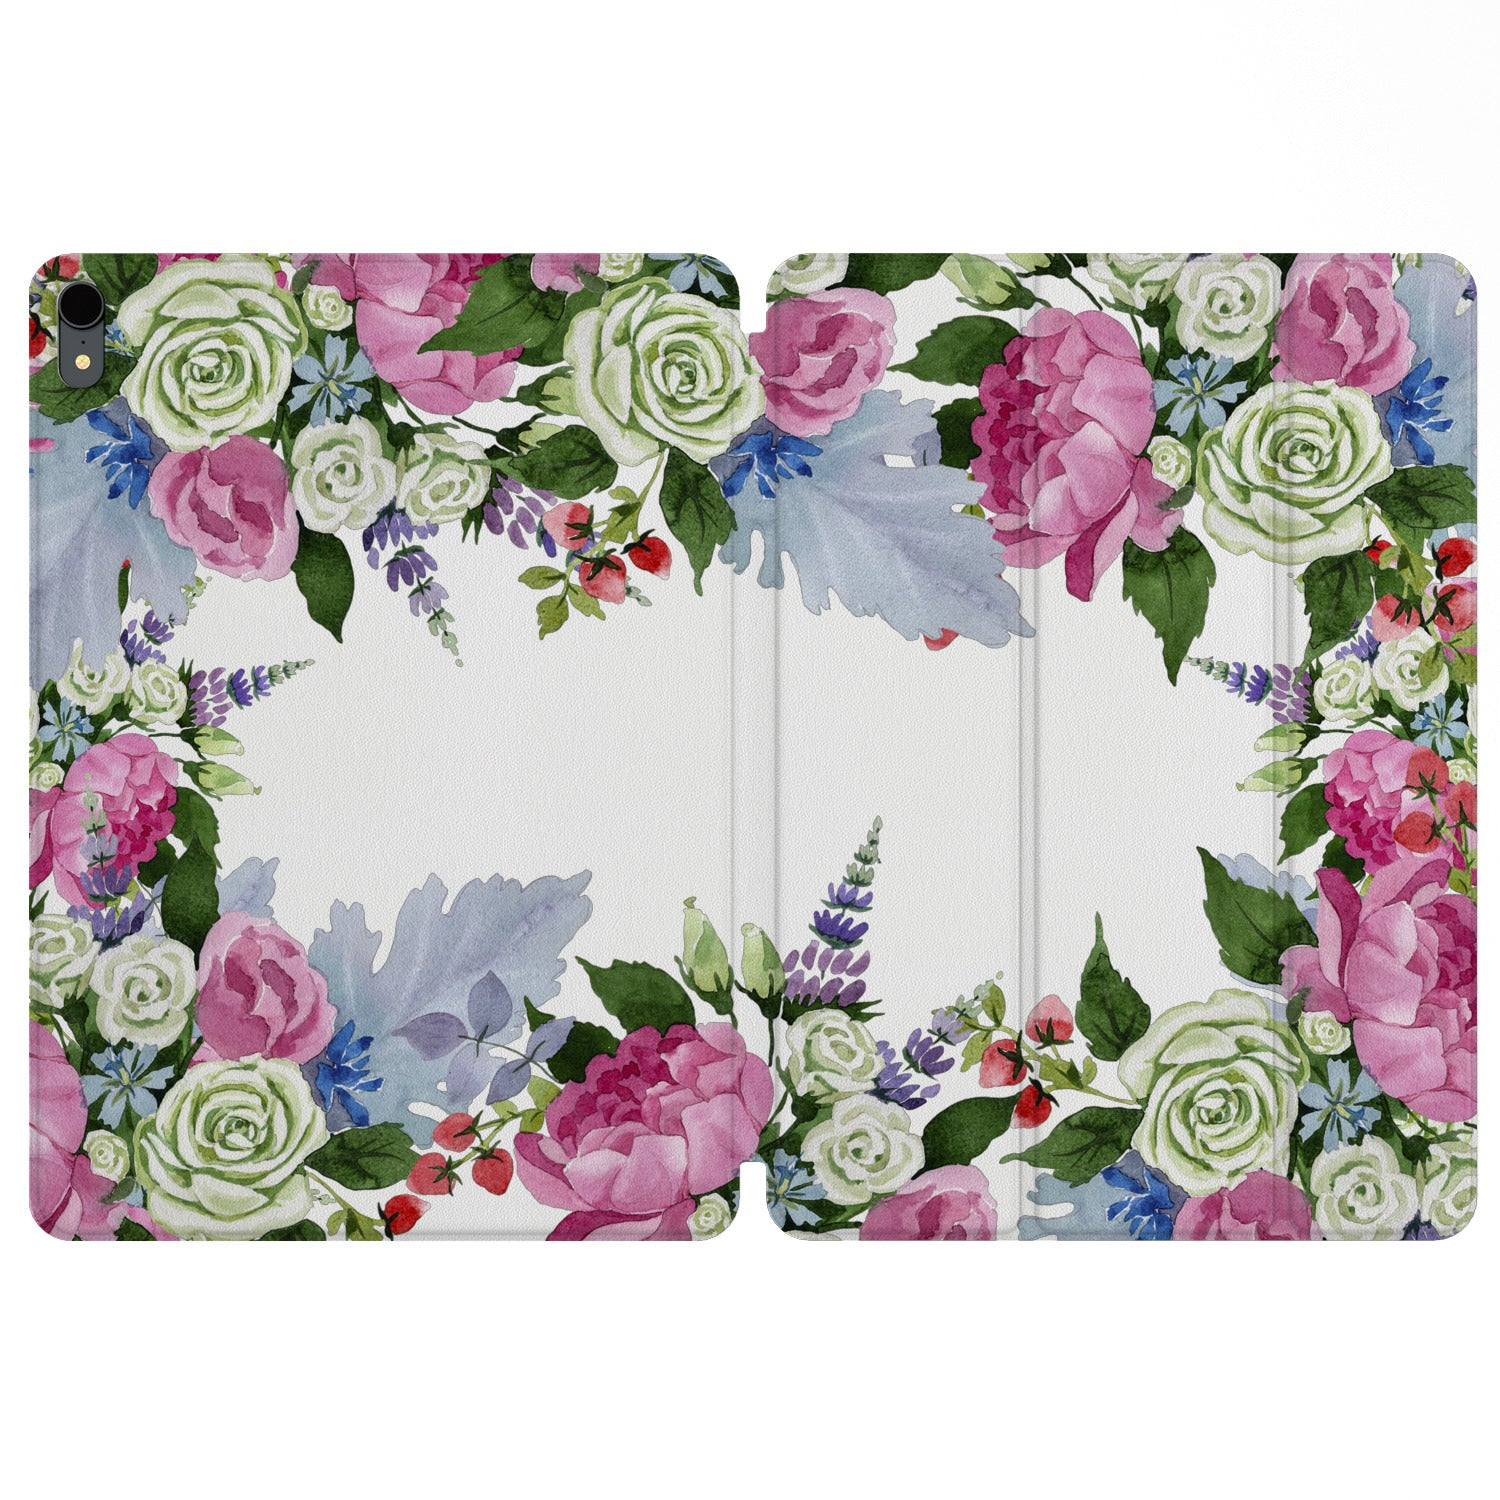 Lex Altern Magnetic iPad Case Spring Blossom for your Apple tablet.